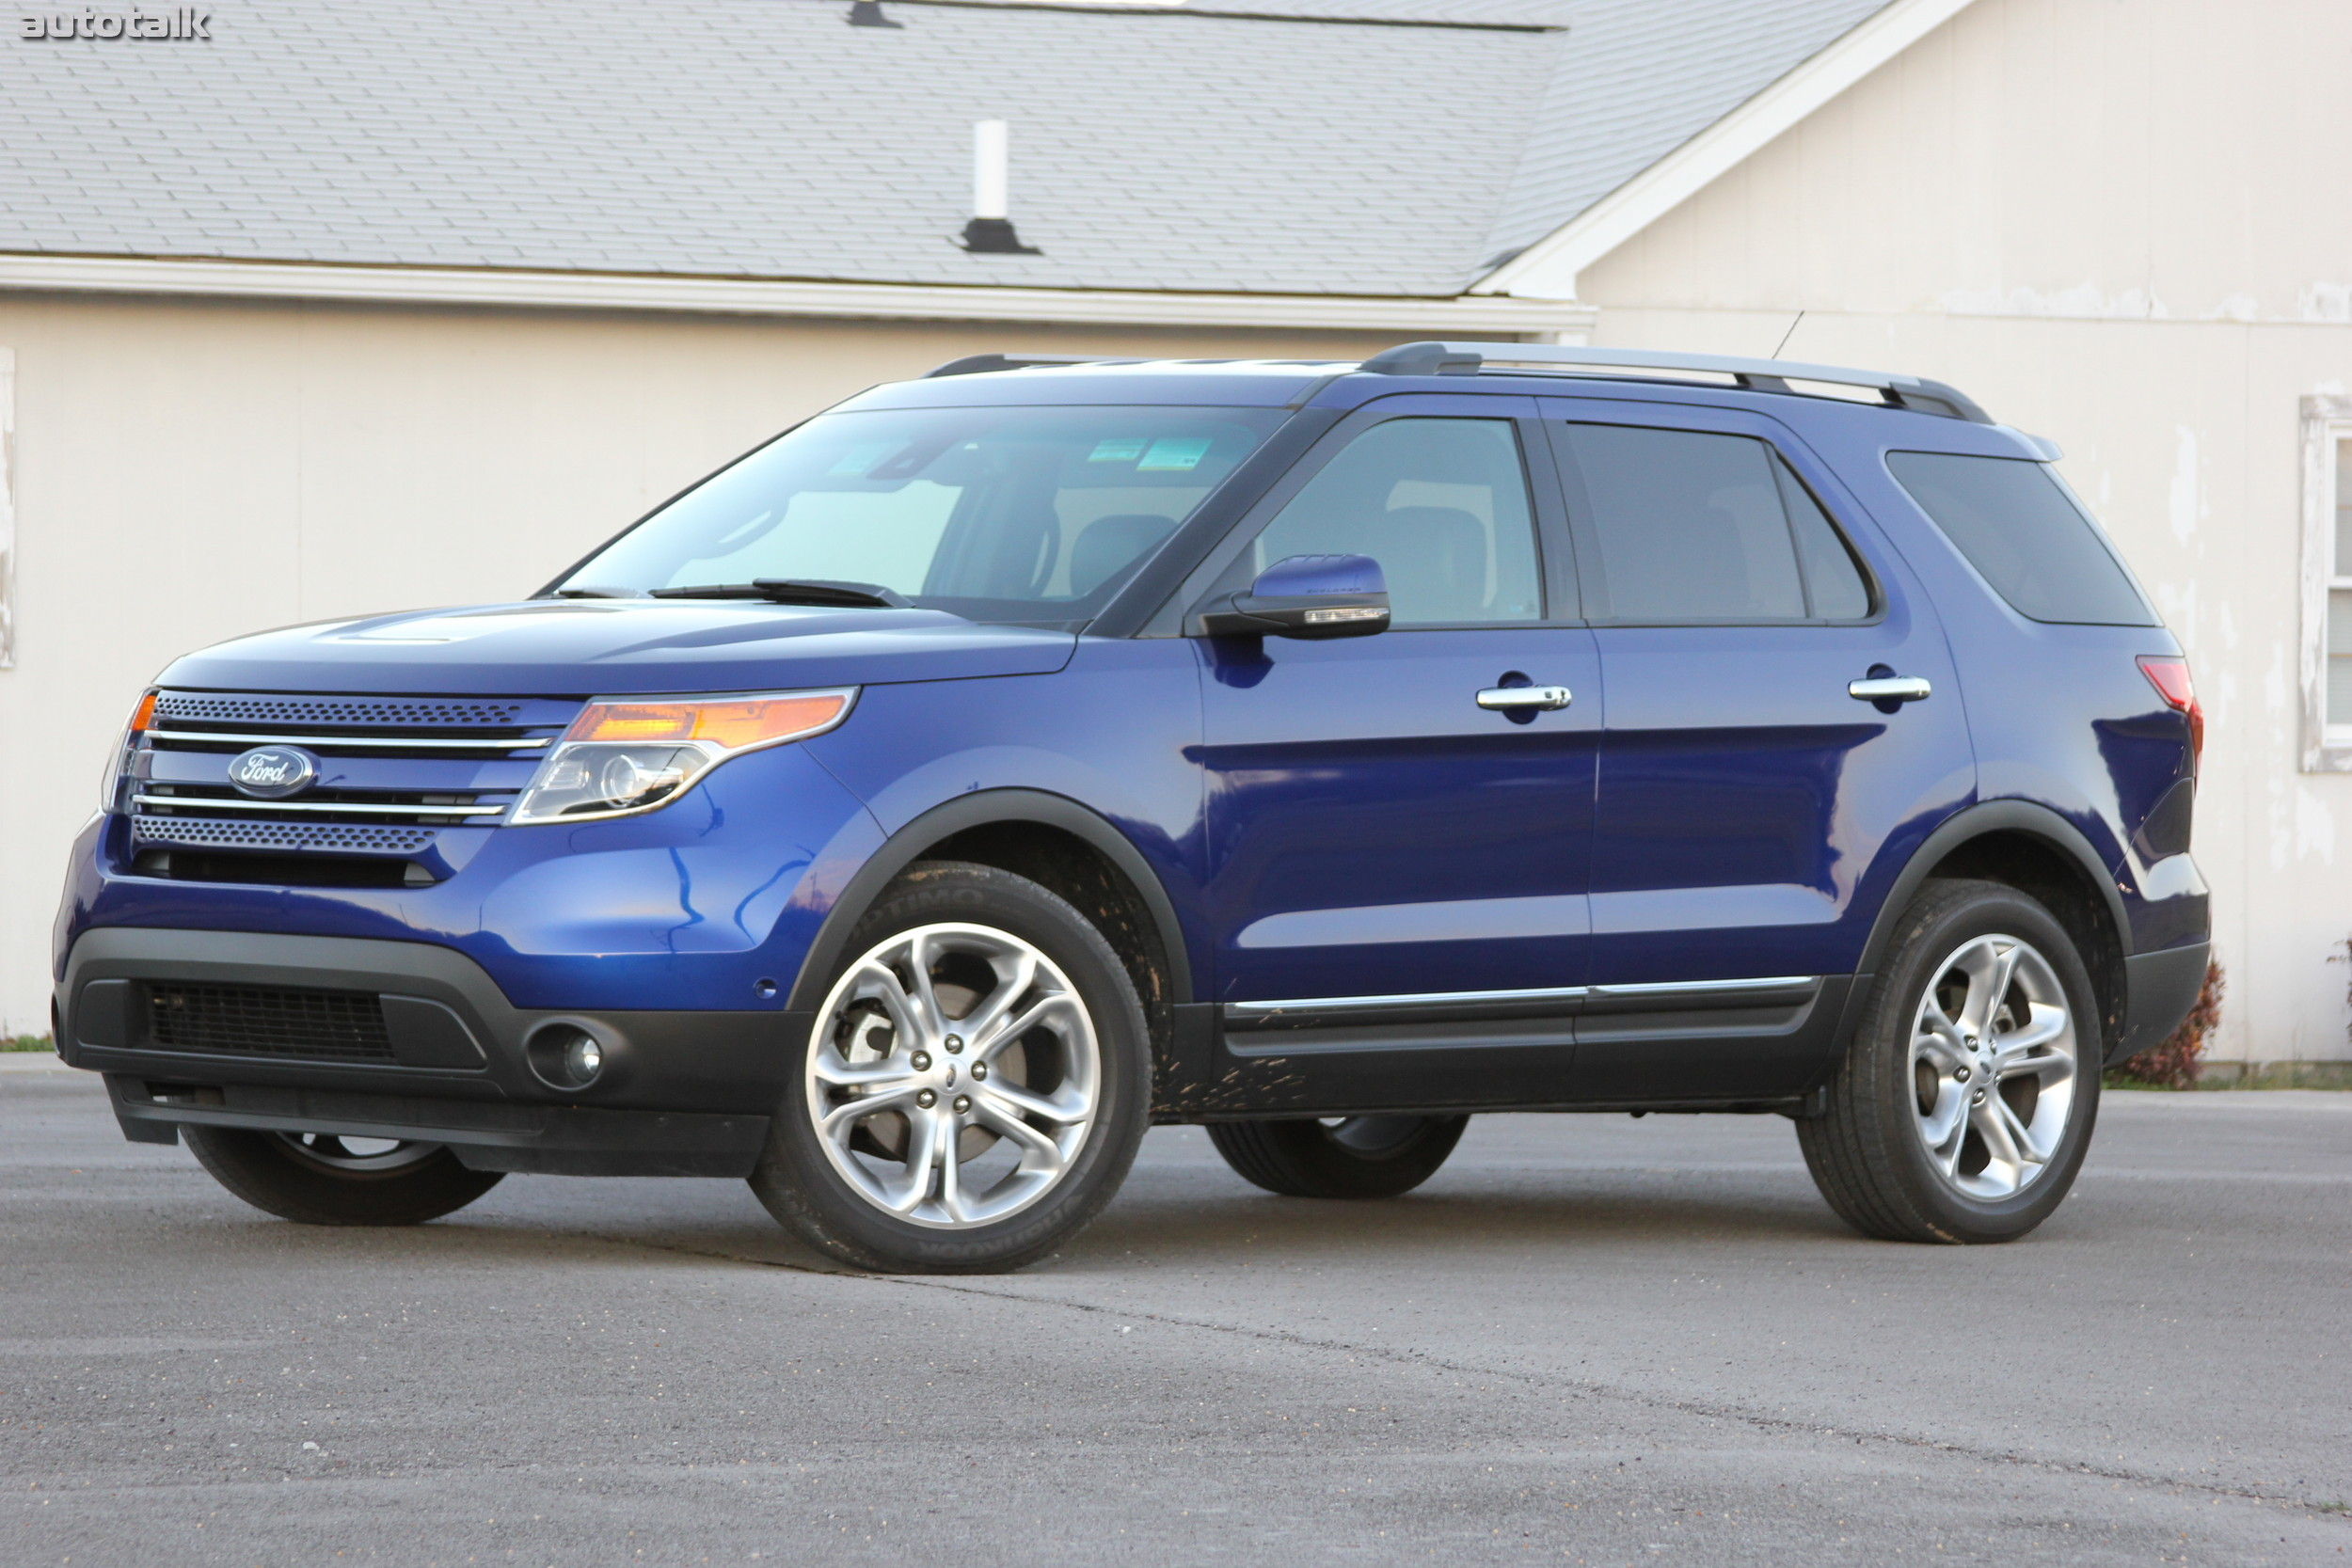 In the late 20th century the ford explorer was the go to vehicle for many families this one vehicle almost single handedly kicked off the bulk of the suv